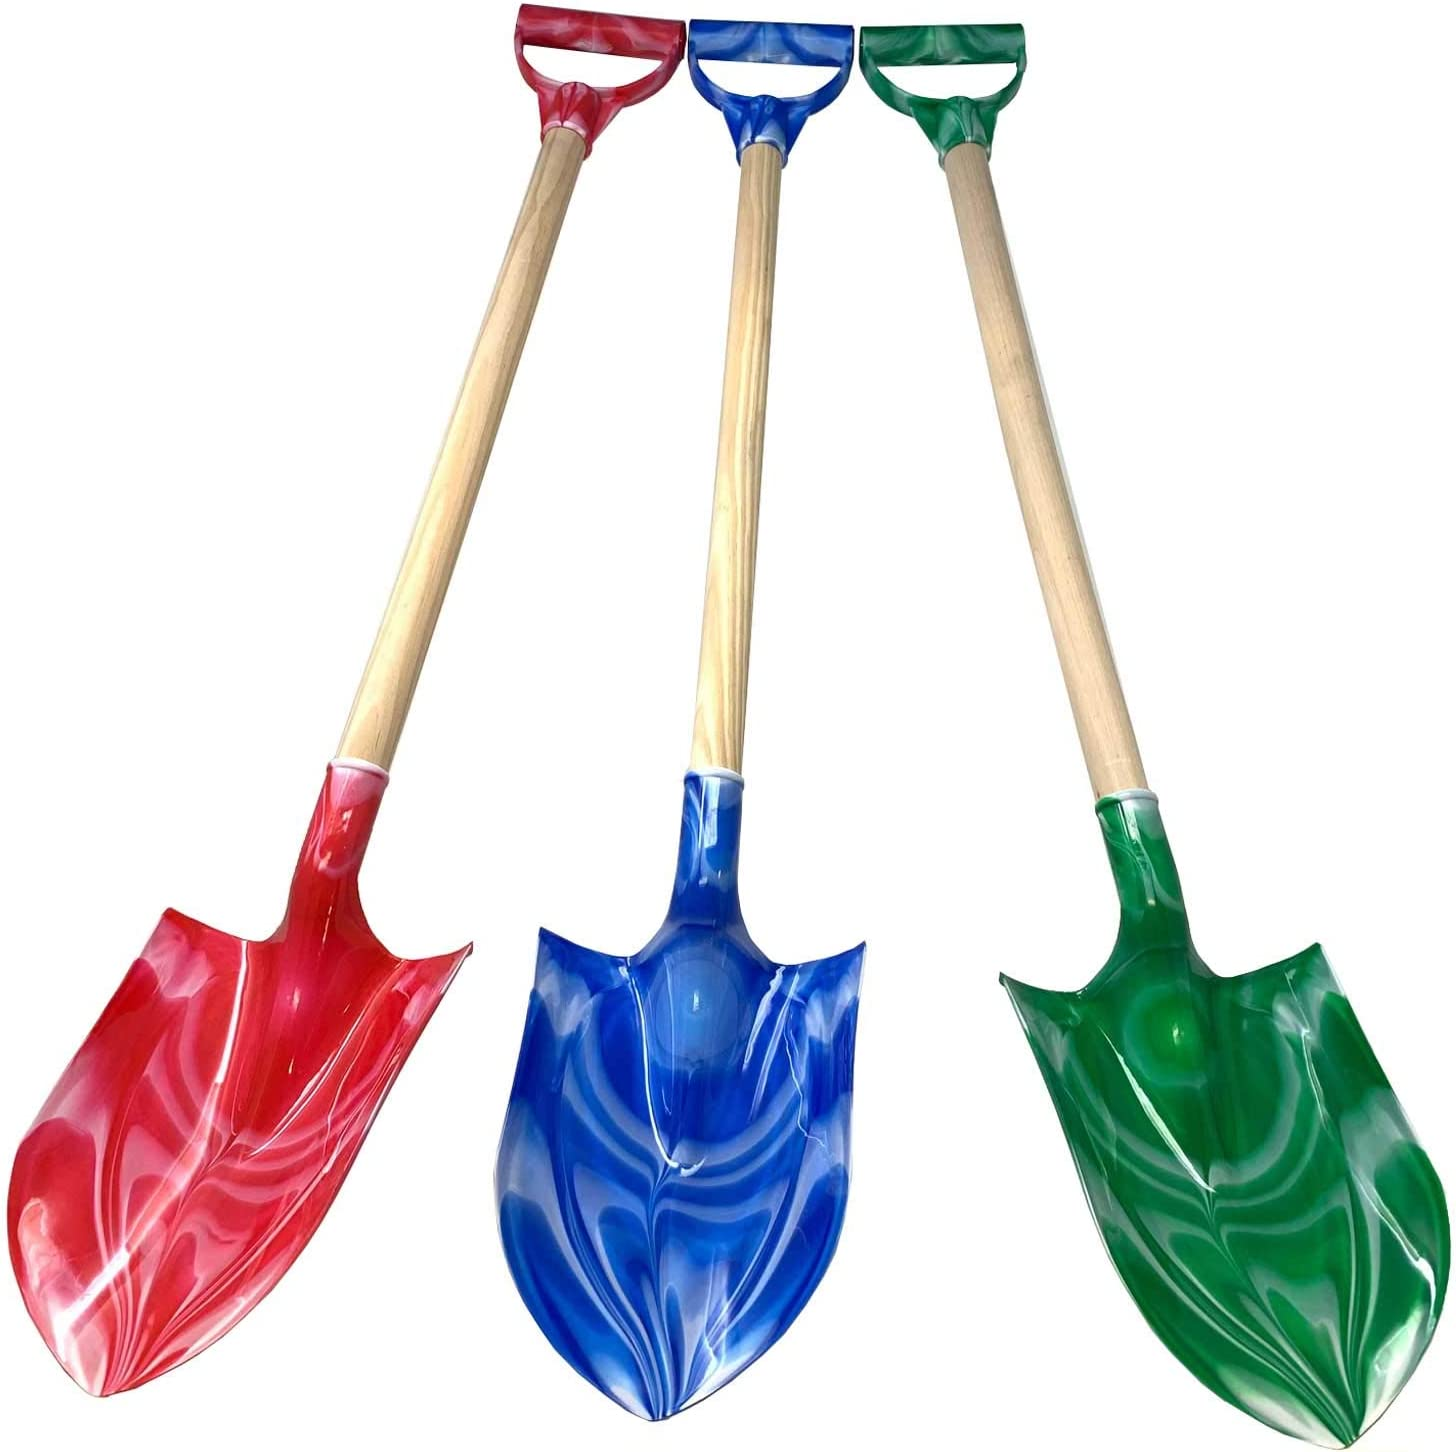 9 Thick Beach Sand Shovels Scooping Toys Kit Beach Gear Water Pool Gardening Digging Bath Toy Environmentally ABS Durable Thick Plastic Complete Gift Set Bundle For Kids Boys Girls 3 Pack Green Blue